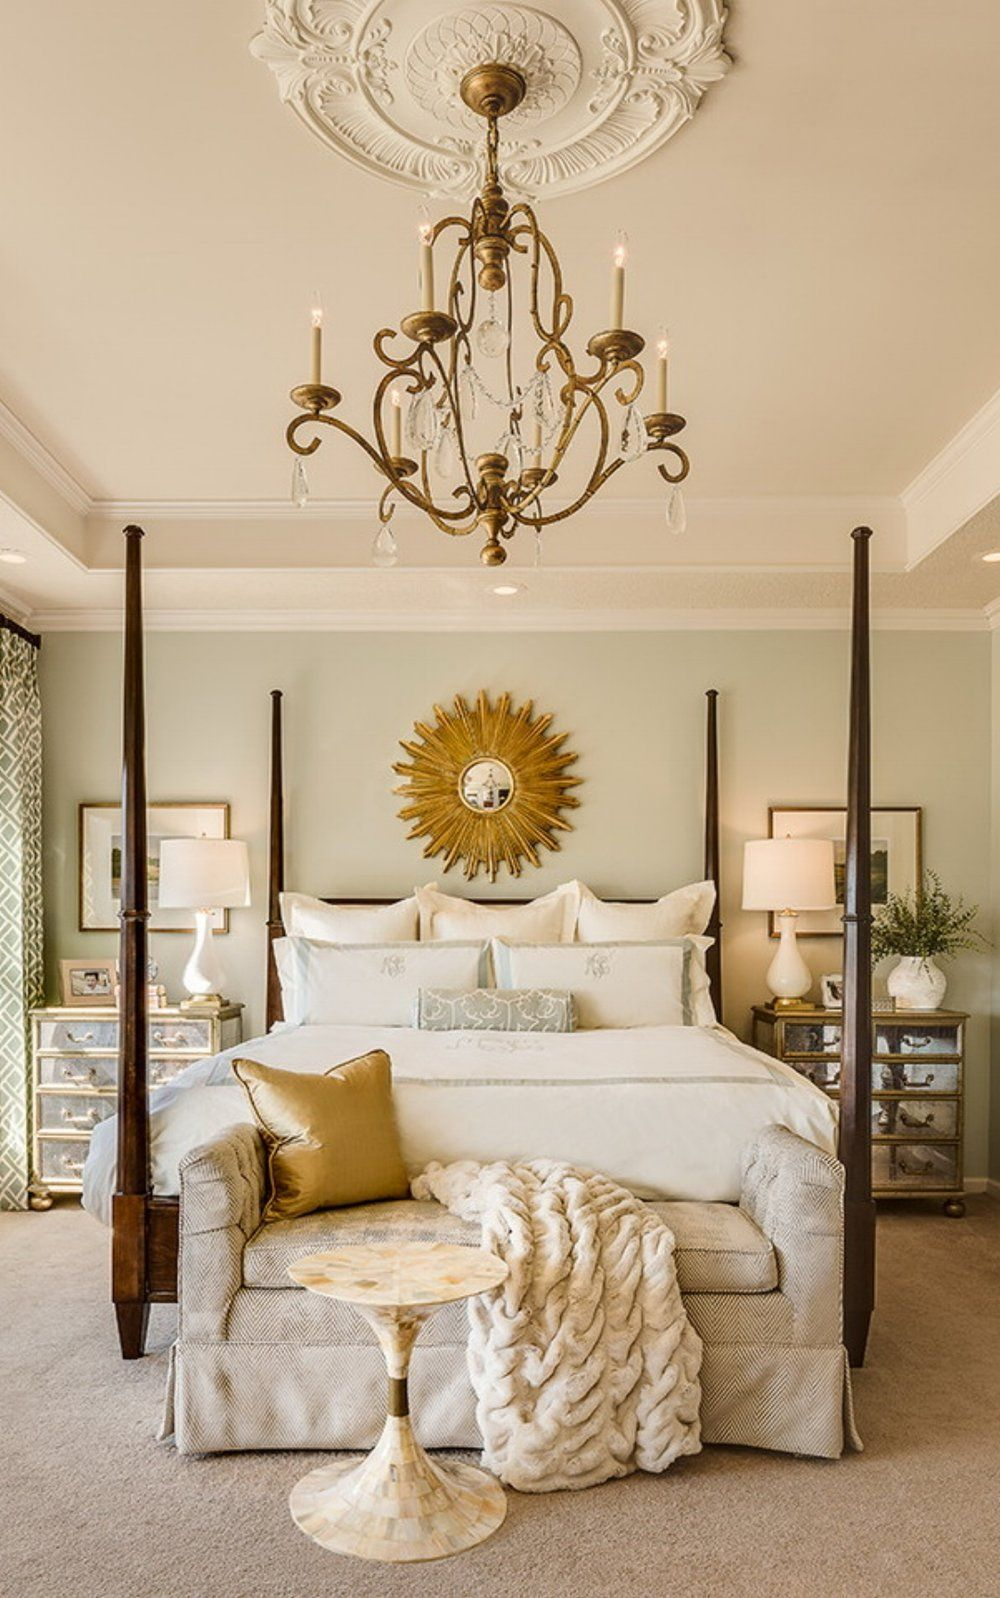 Medallion Bedding Bedroom Traditional With Bedroom Bedroom Chandelier Ceiling Traditional Bedroom Design Traditional Bedroom Traditional Bedroom Decor Traditional bedroom ideas photos